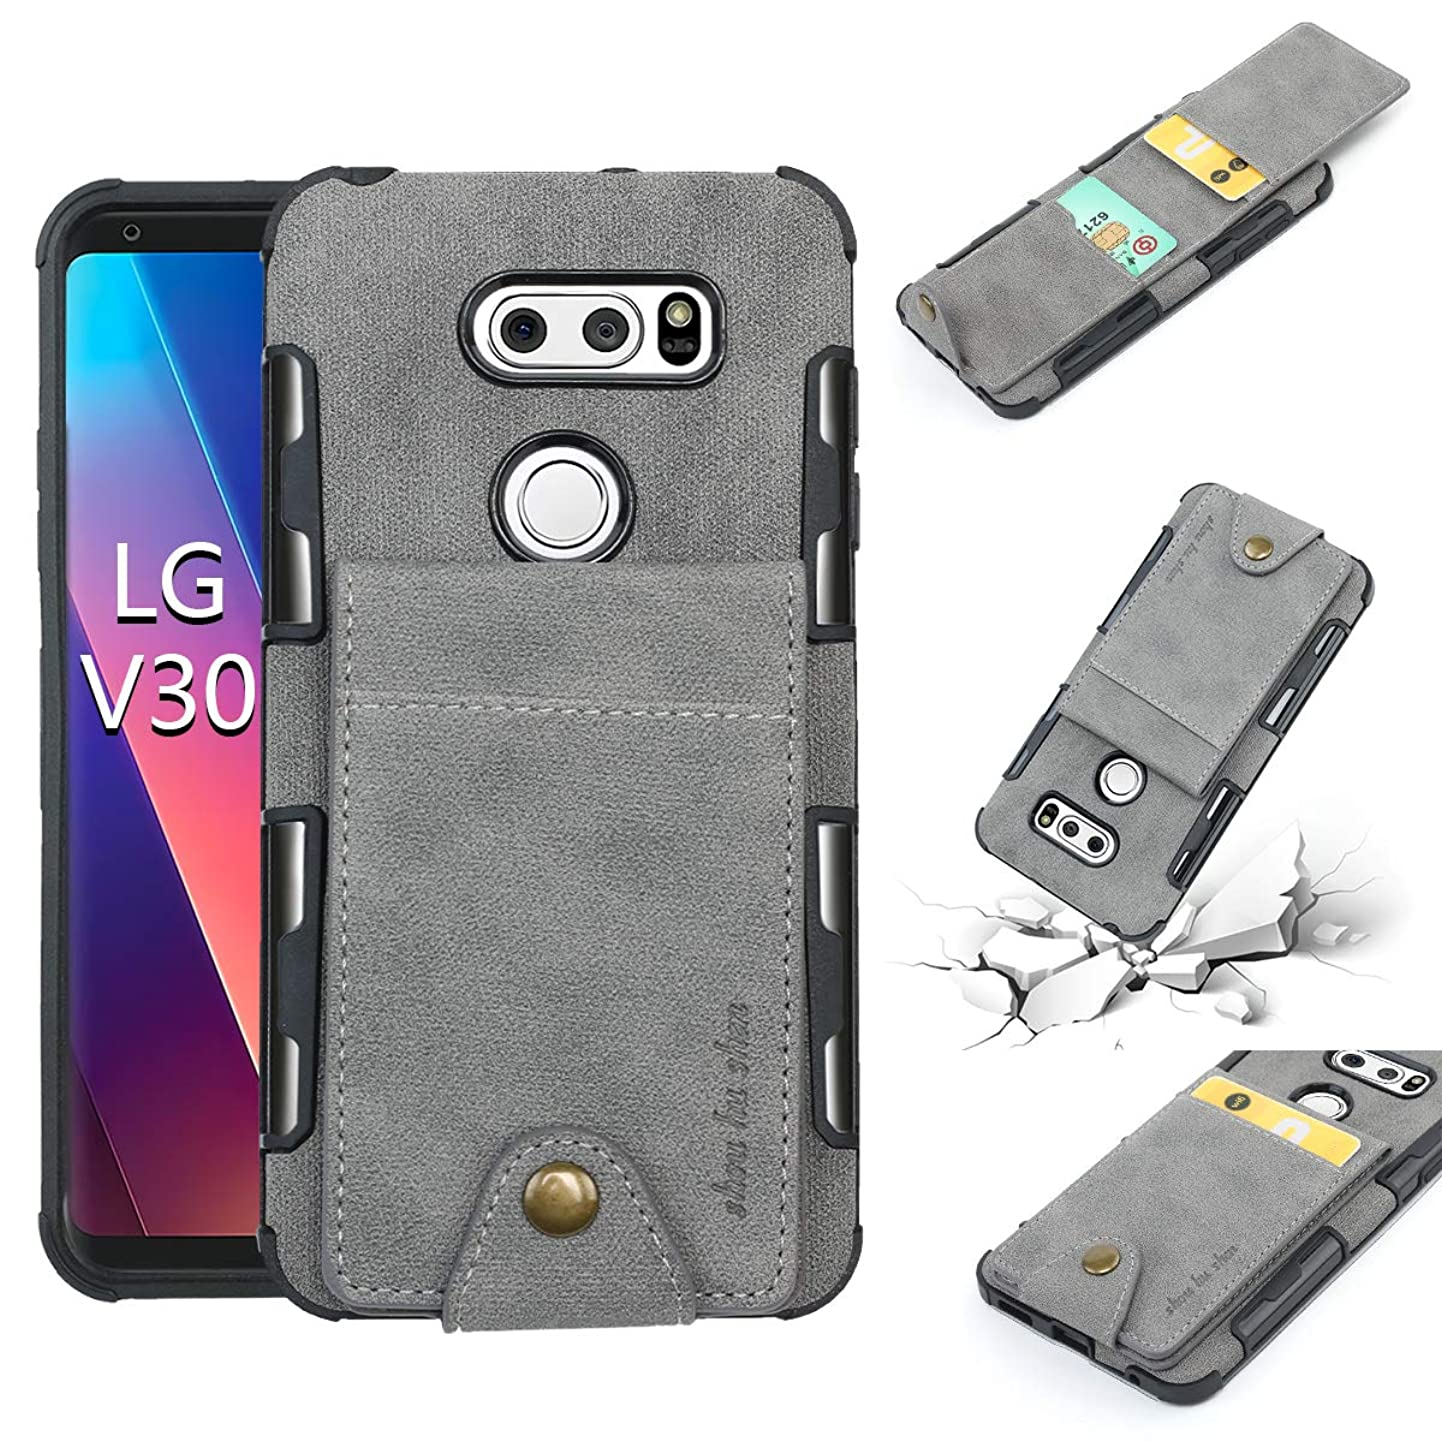 LG V30 Wallet Case, 5 ID Credit Card Slot, Button Flip-Out Leather Drop Protection Case - Gray rmwjkdlkjpm6